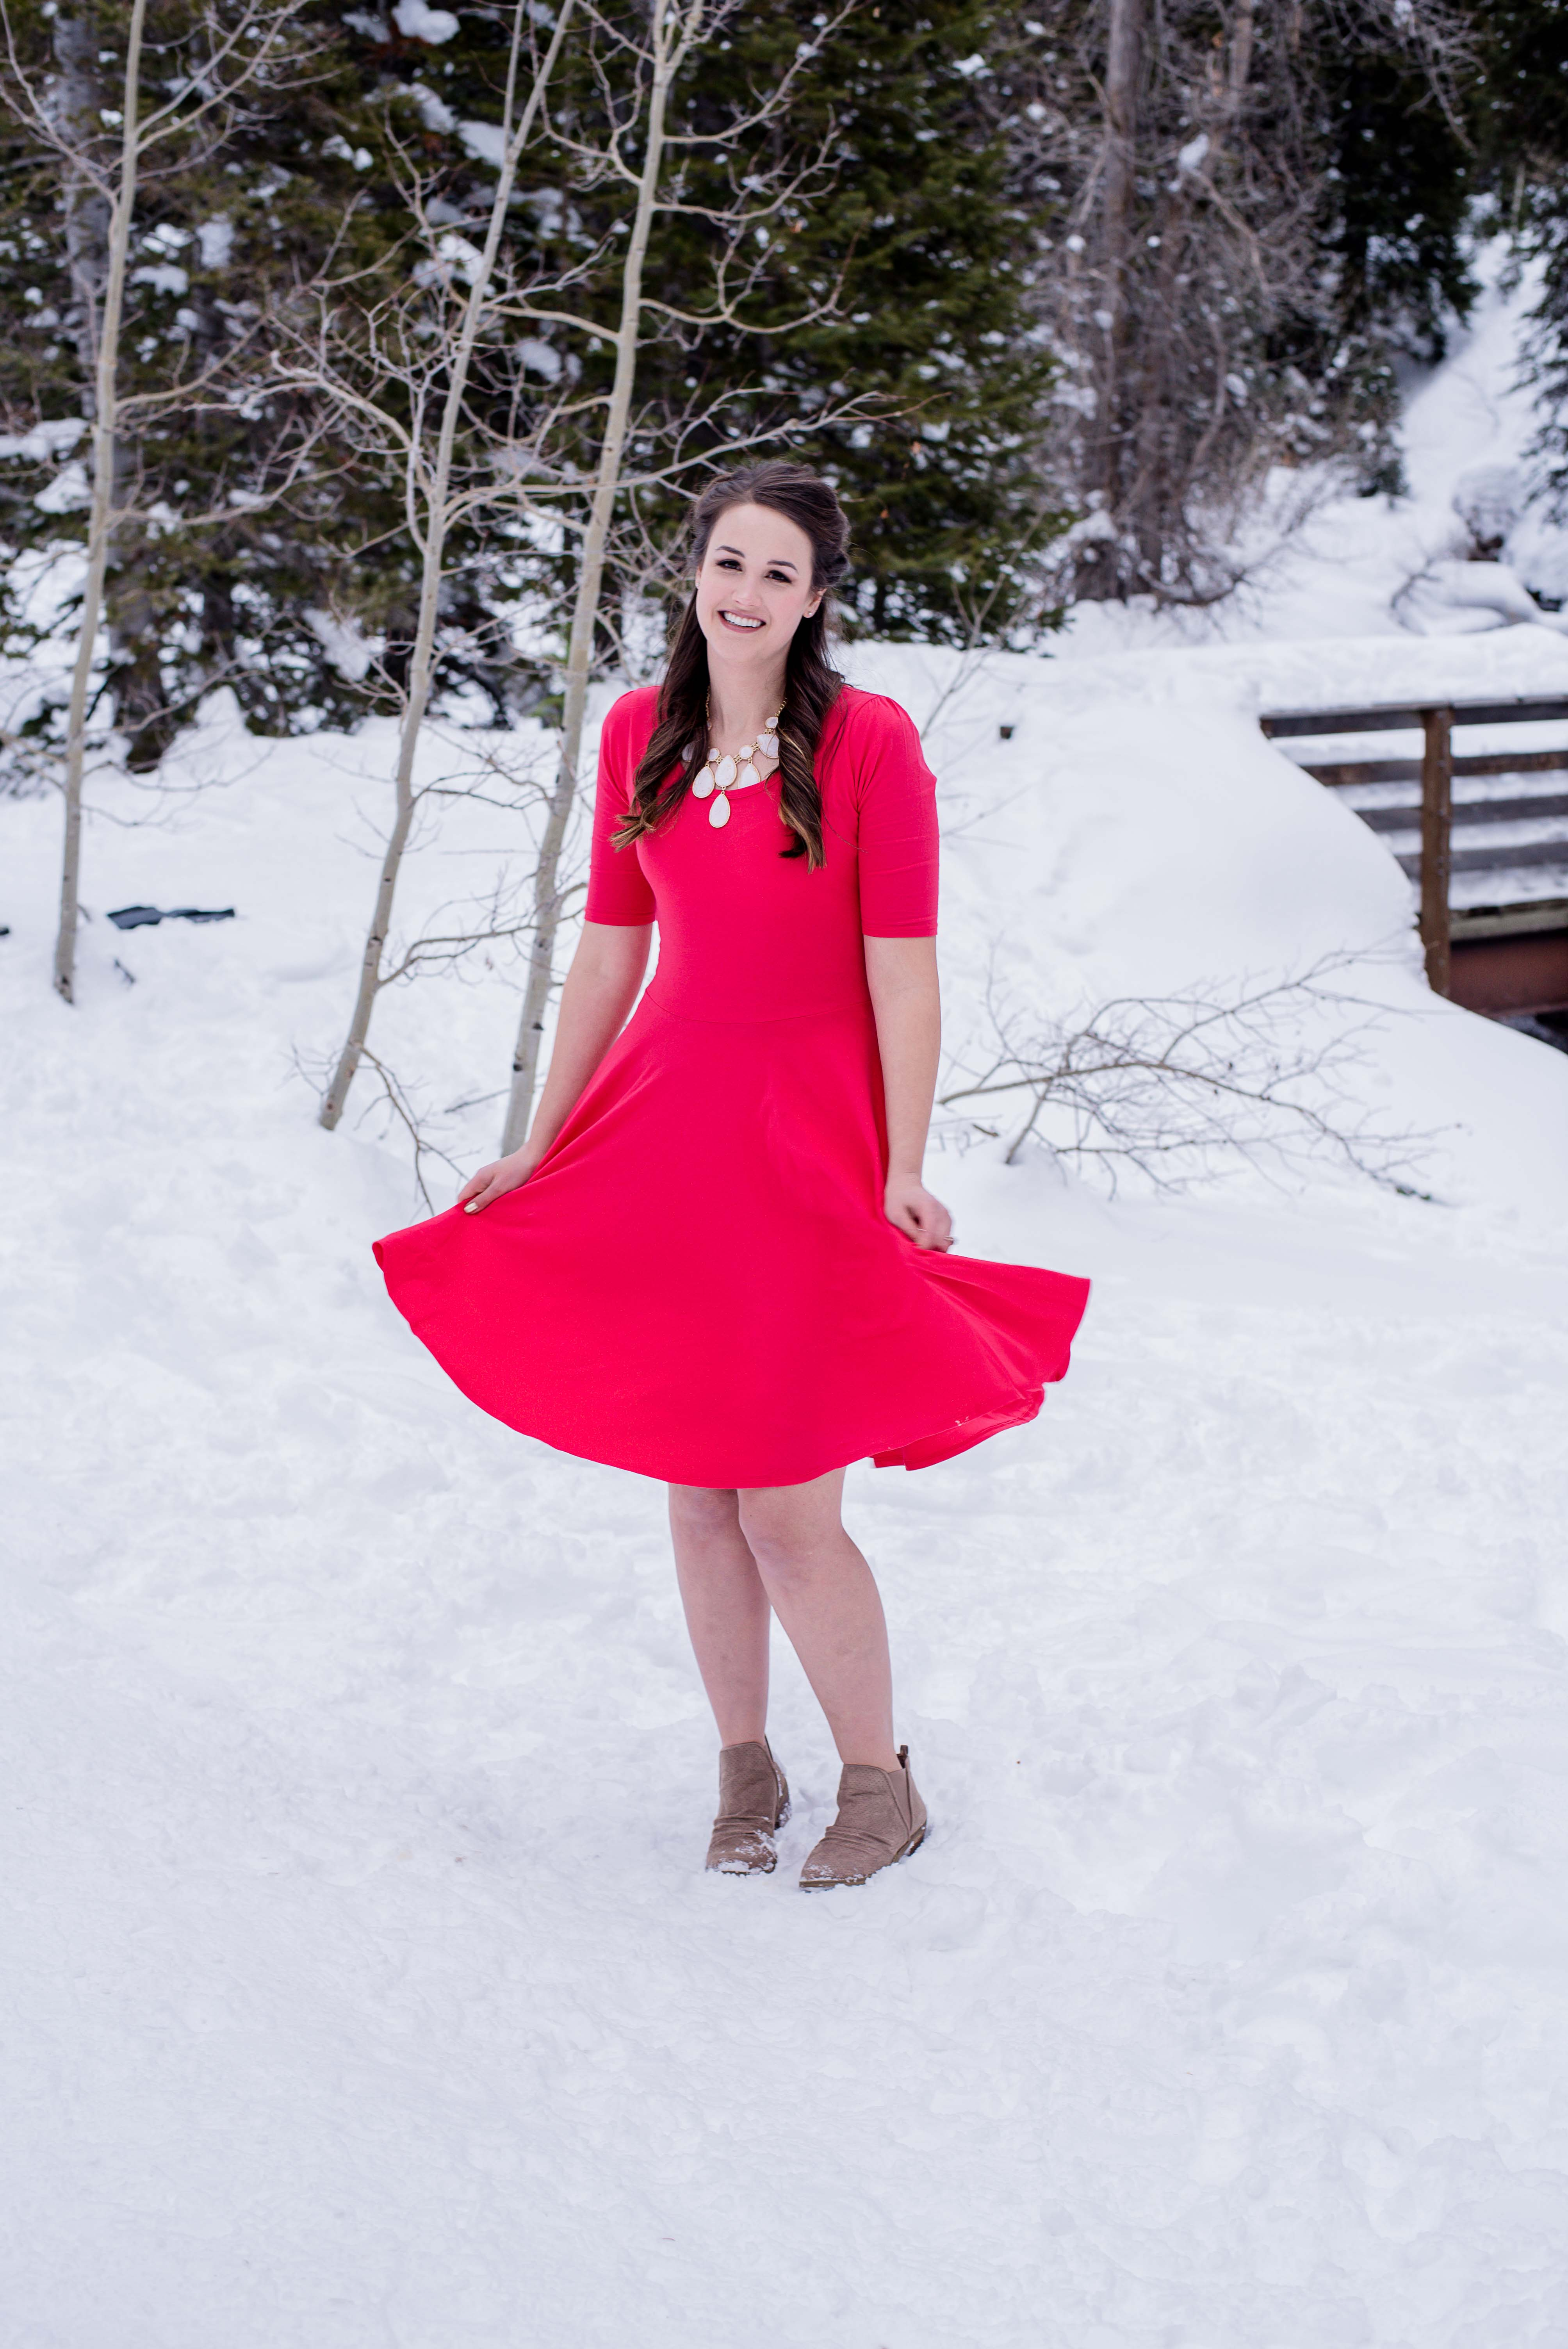 winter-wonderland-sadie-banks-photography-465